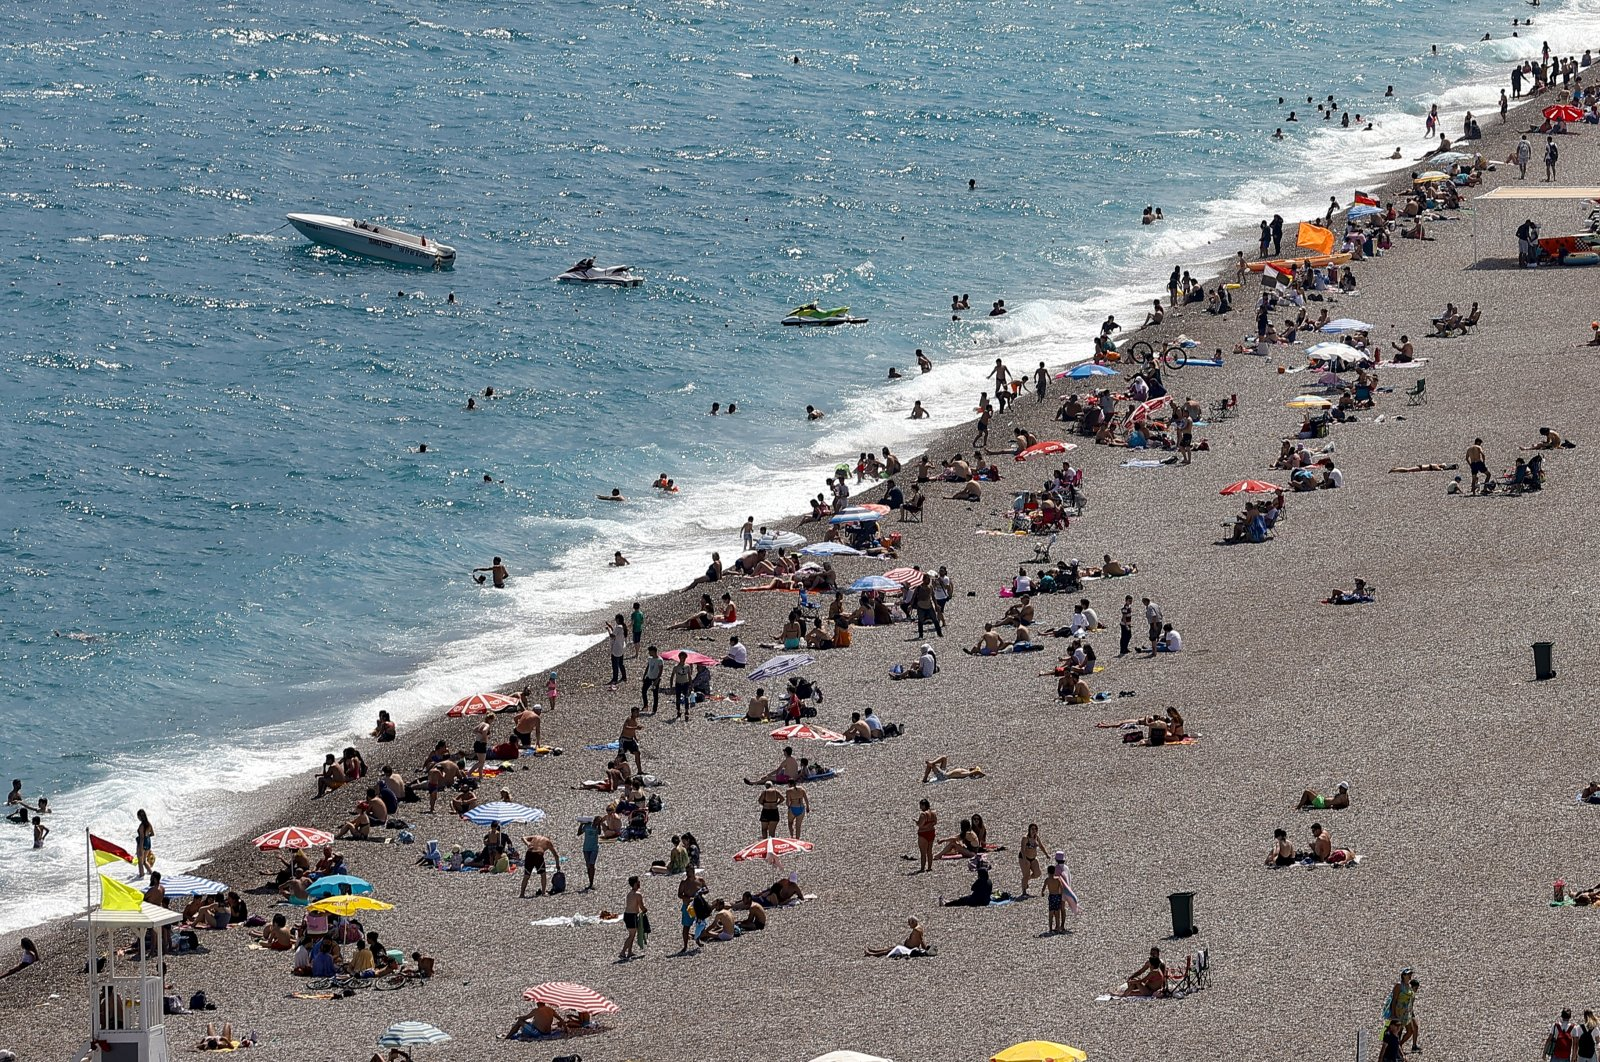 People are seen on a beach in the southern Mediterranean resort city of Antalya, Turkey, June 12, 2021. (AA Photo)